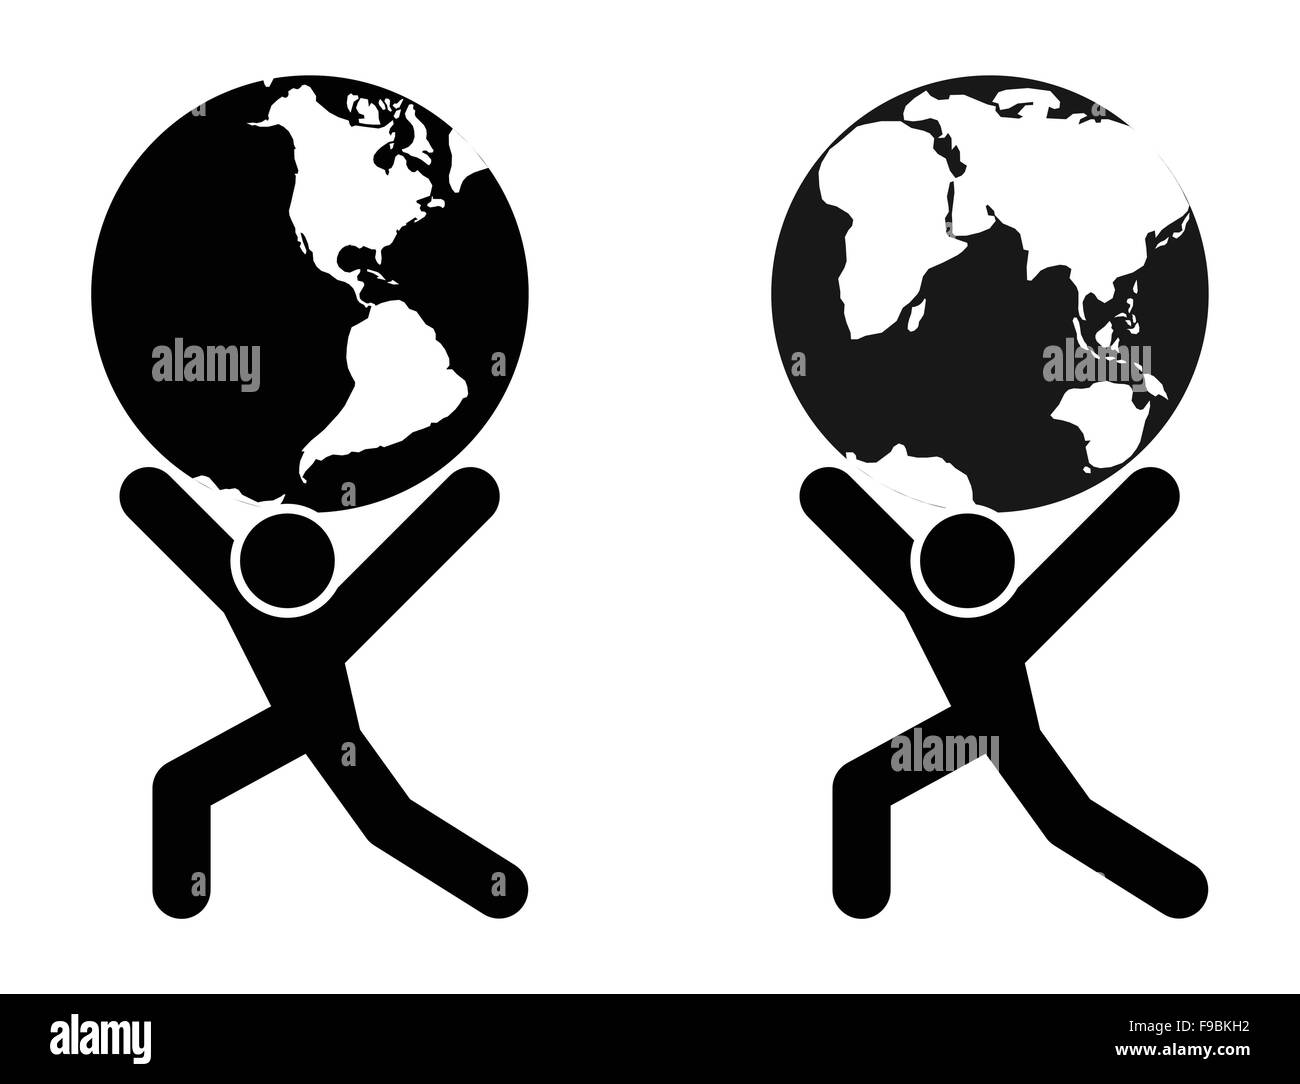 Abstract man silhouette holding earth globe on shoulders illustration. - Stock Image